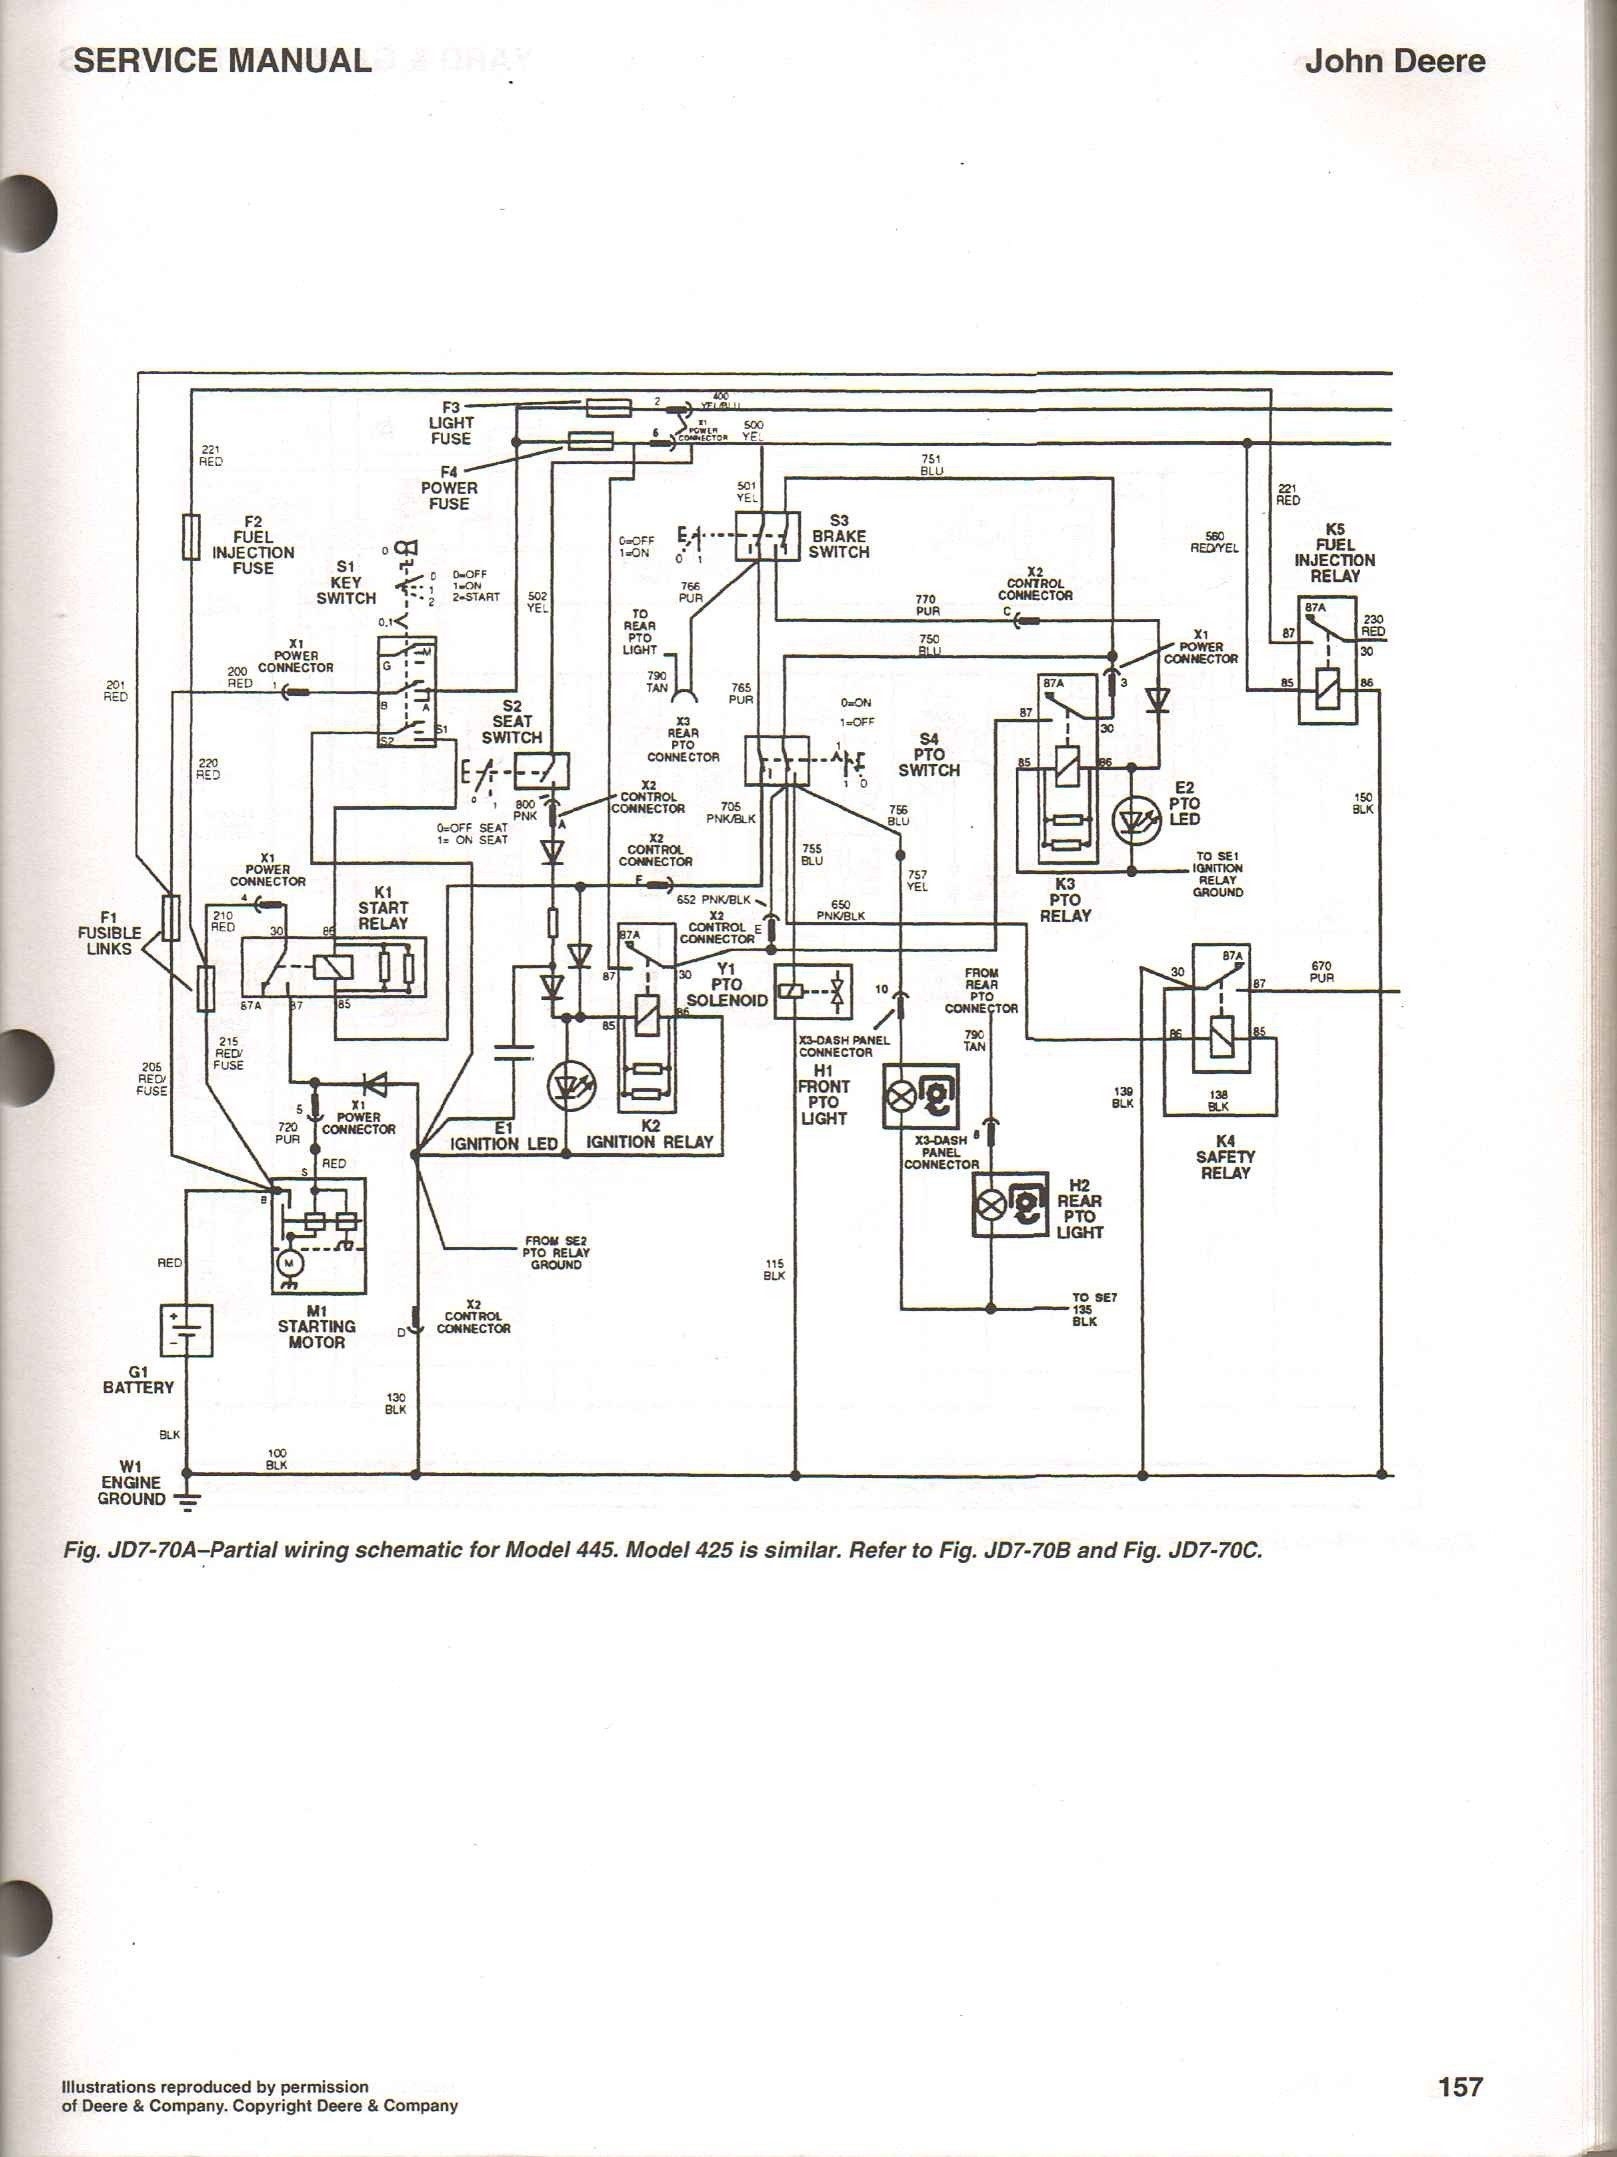 John Deere 4960 Wiring Diagram from schematron.org